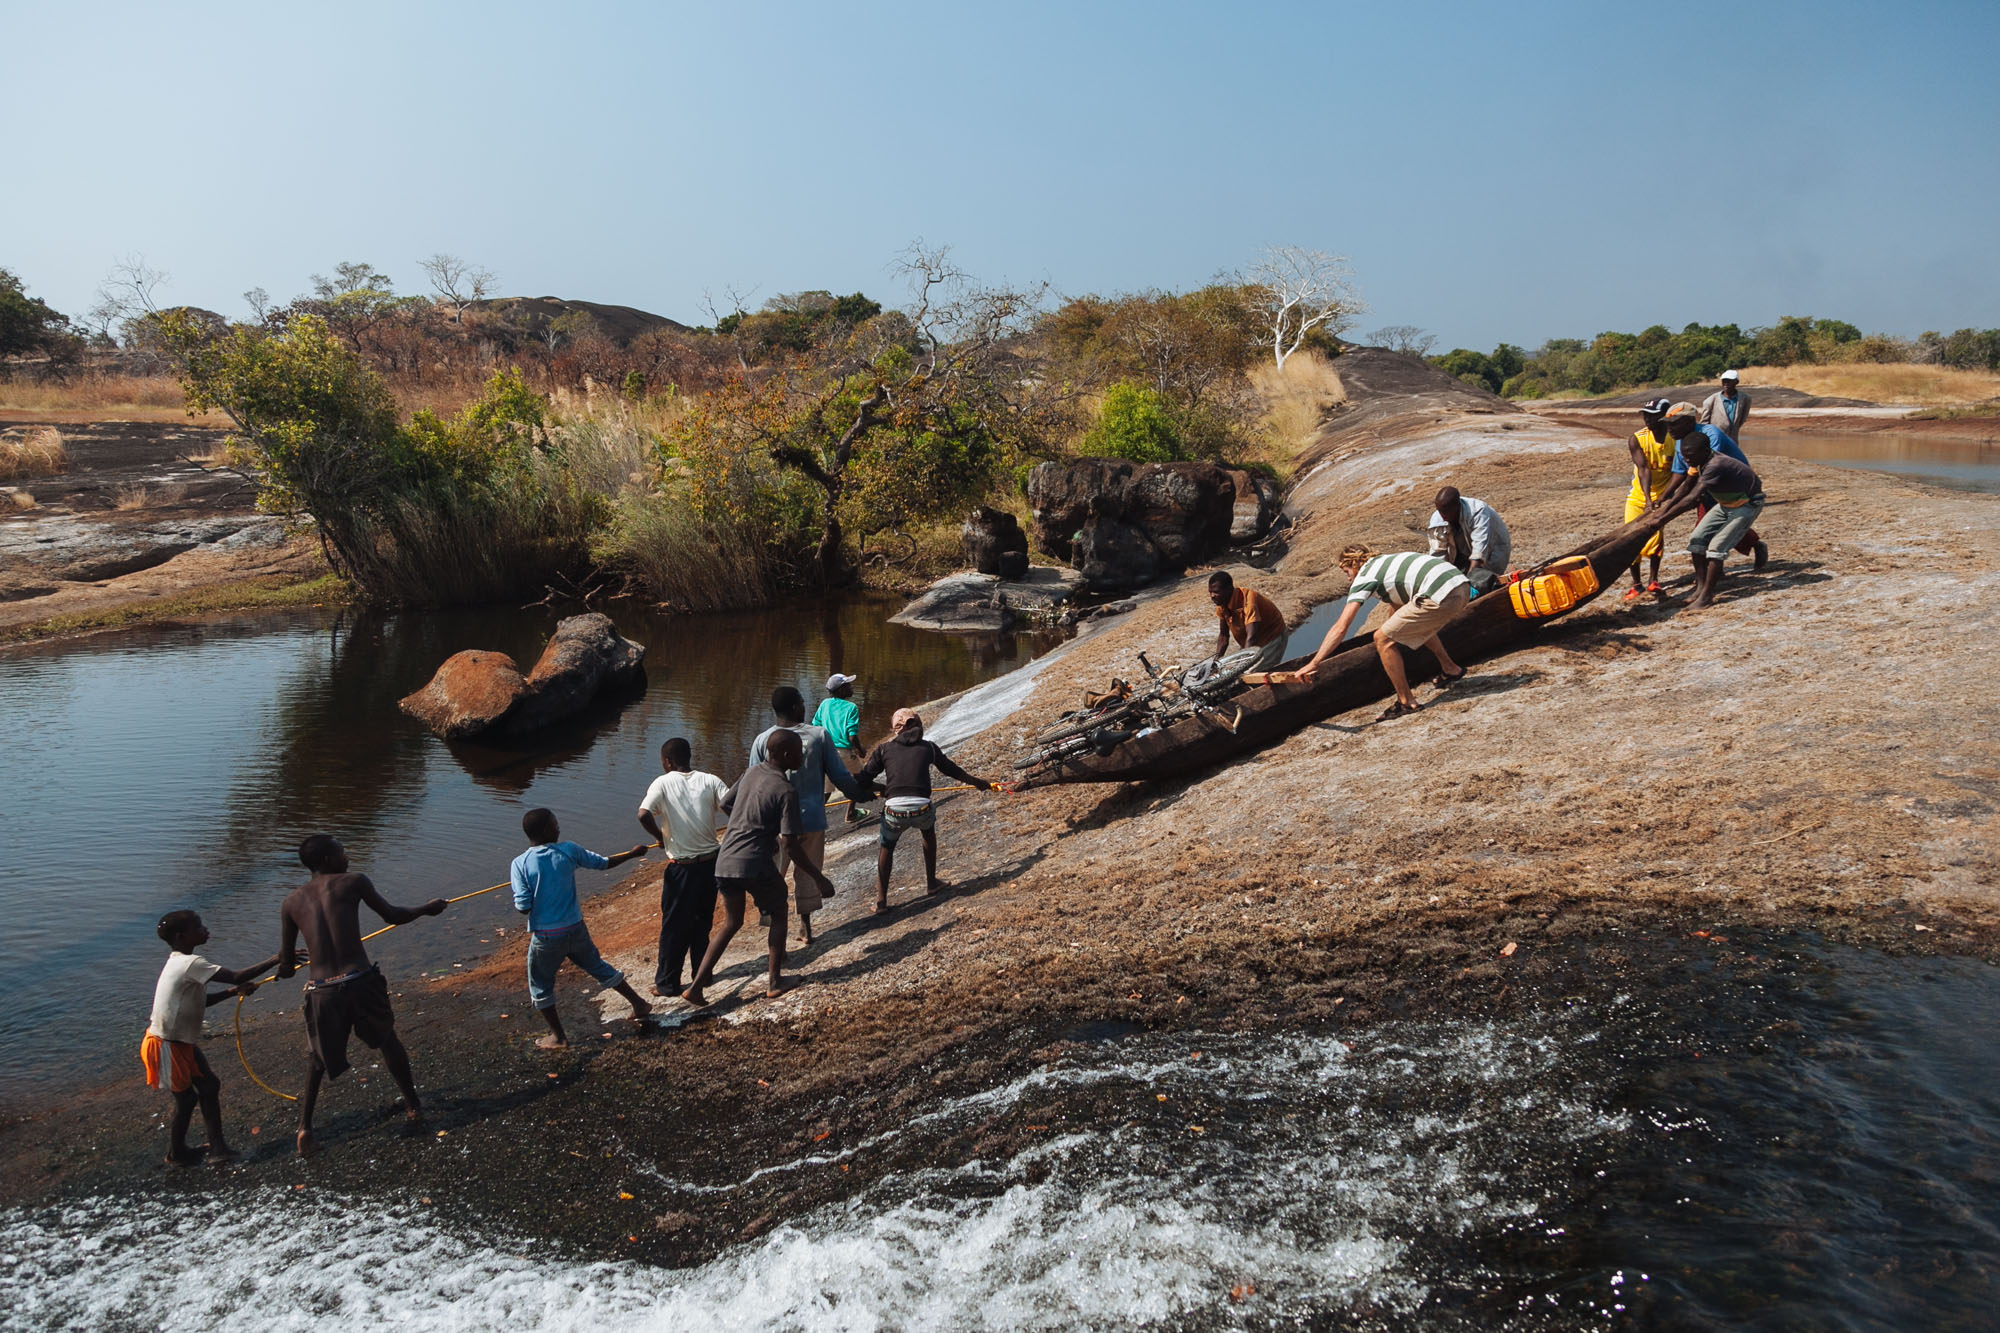 A local village helps us drag our pirogue overland to avoid a large 1km set of rapids.